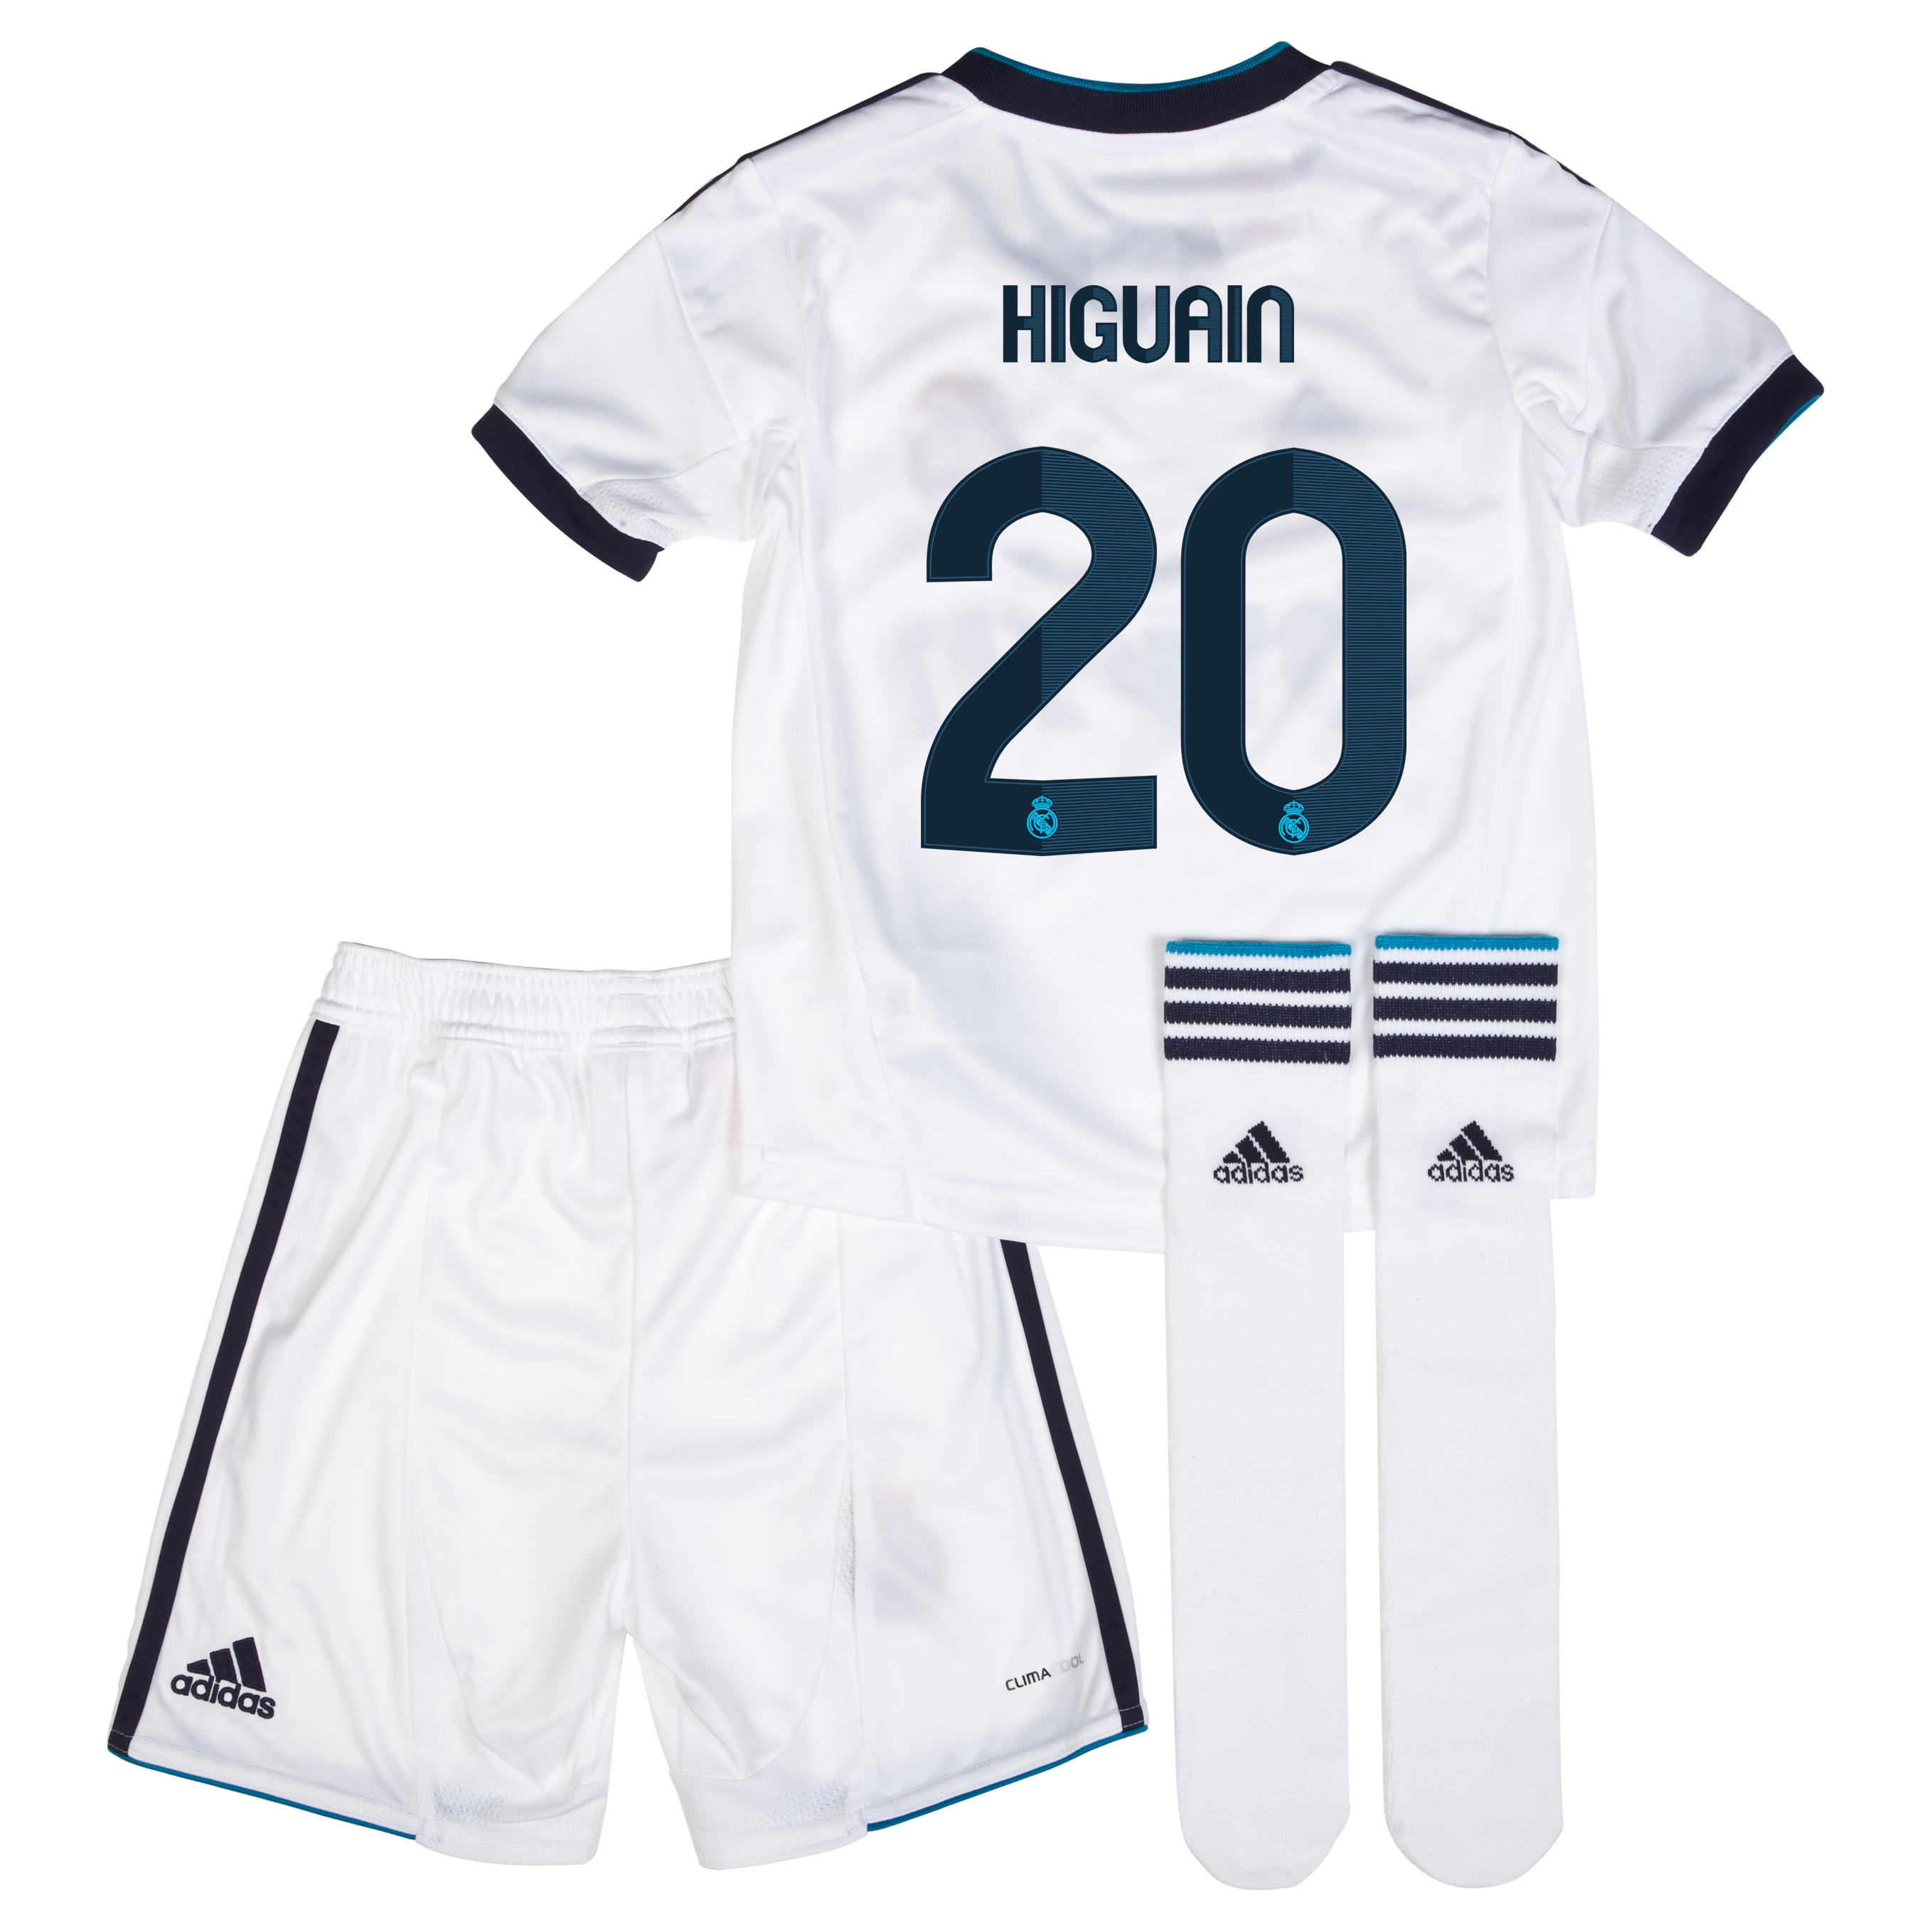 Mini kit local Real Madrid 2012/13 con impresin 20 Higuan